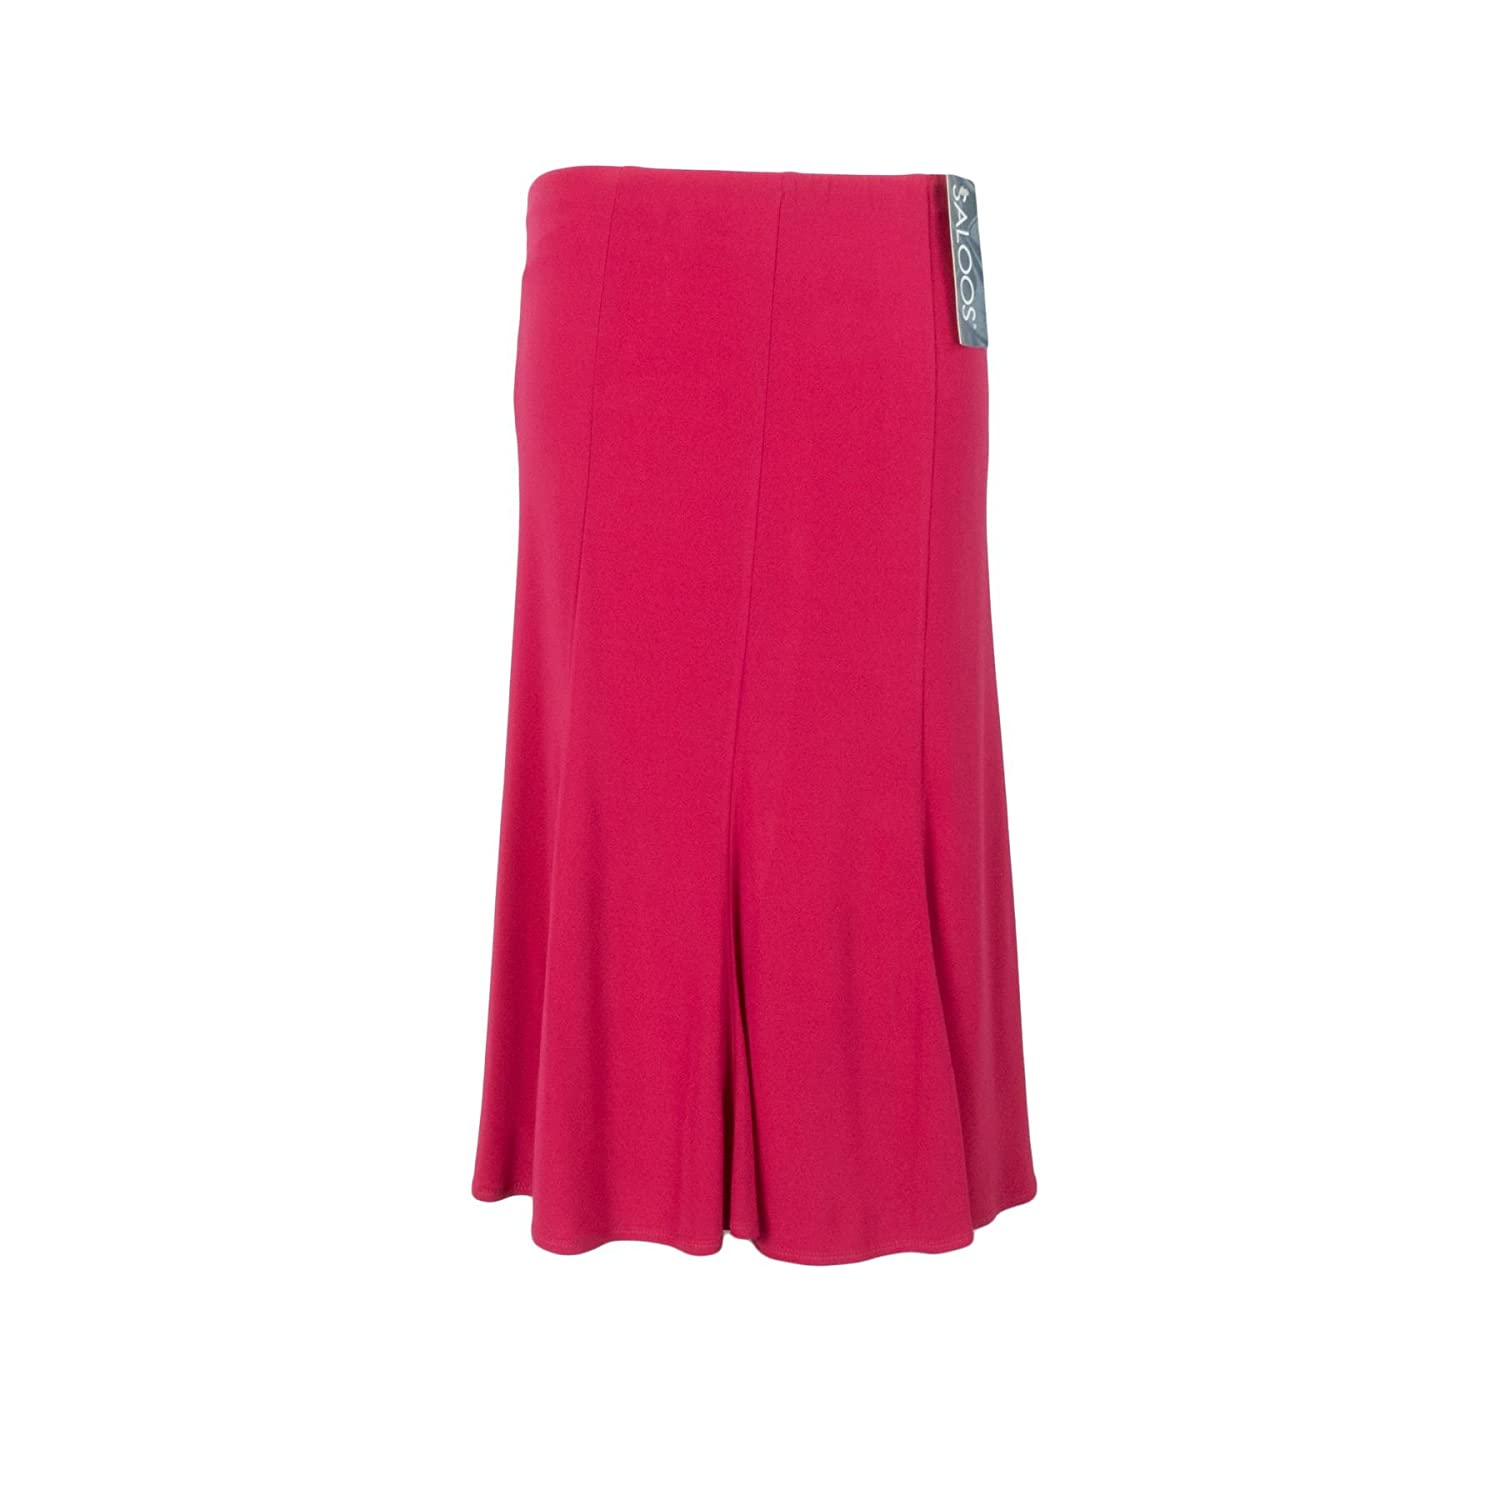 Saloos Panel Lined IT Skirt 3887/4